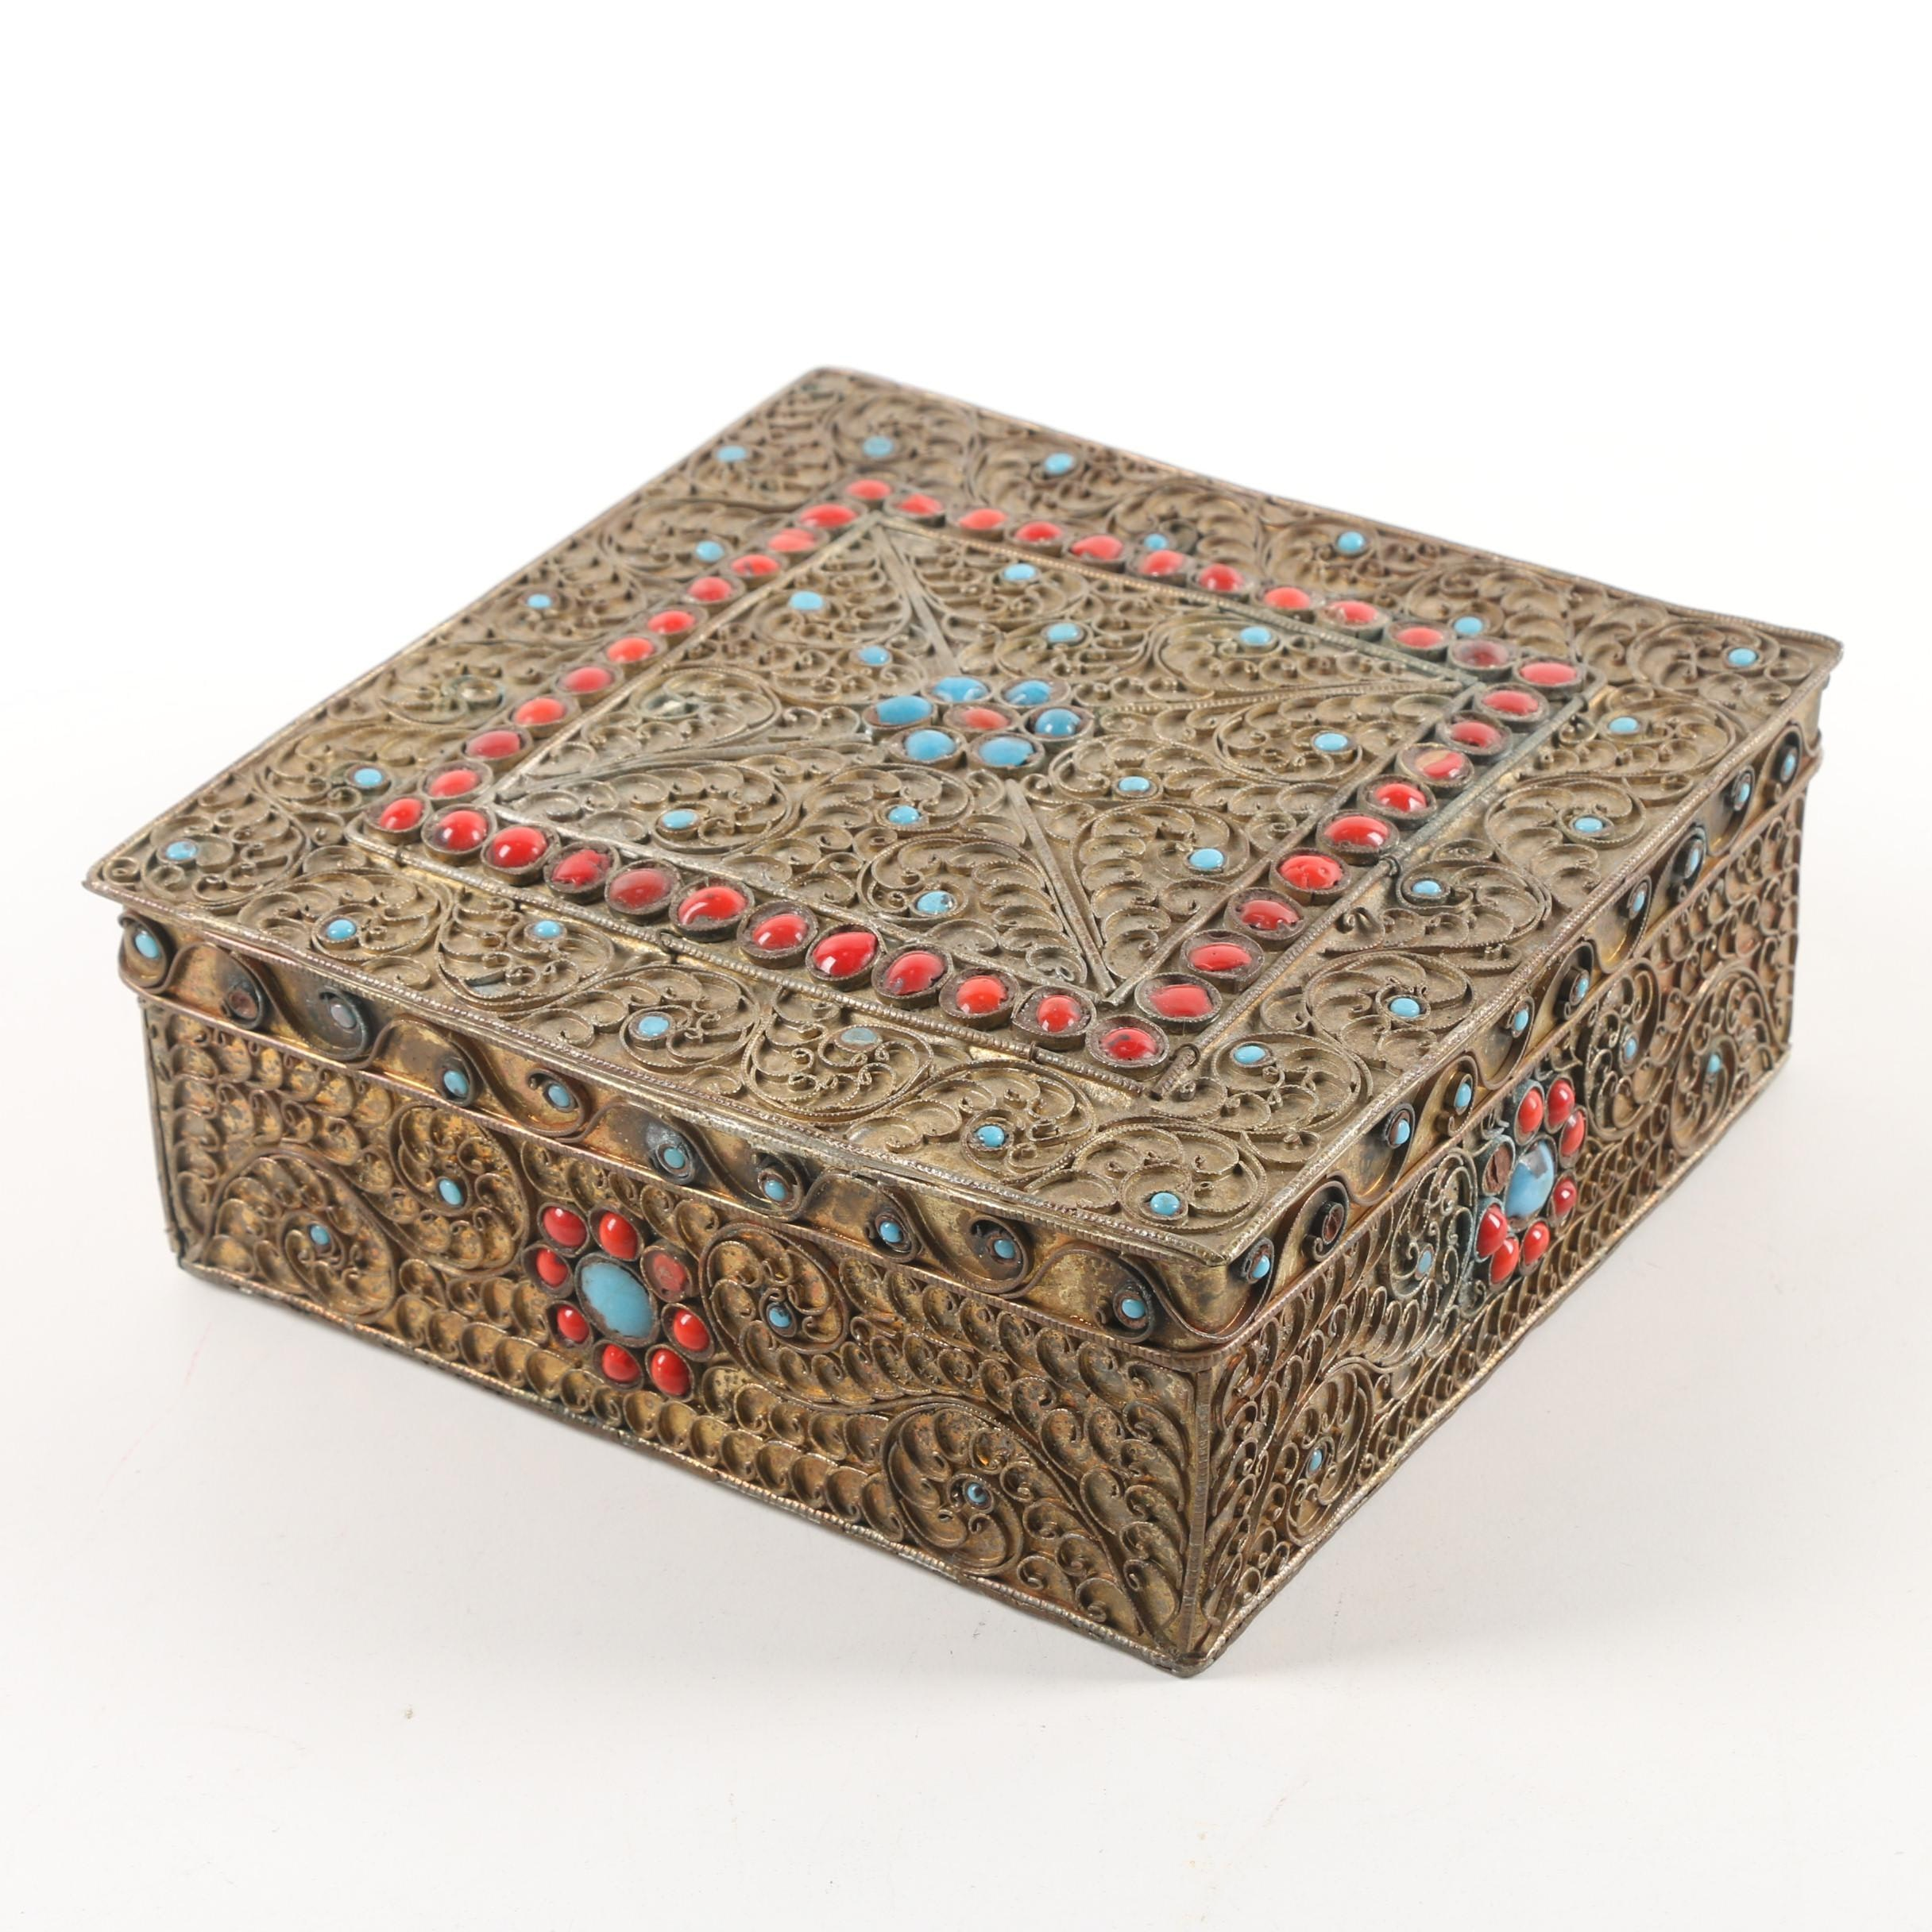 Vintage Nepalese Brass Lidded Box with Cabochon Embellishments